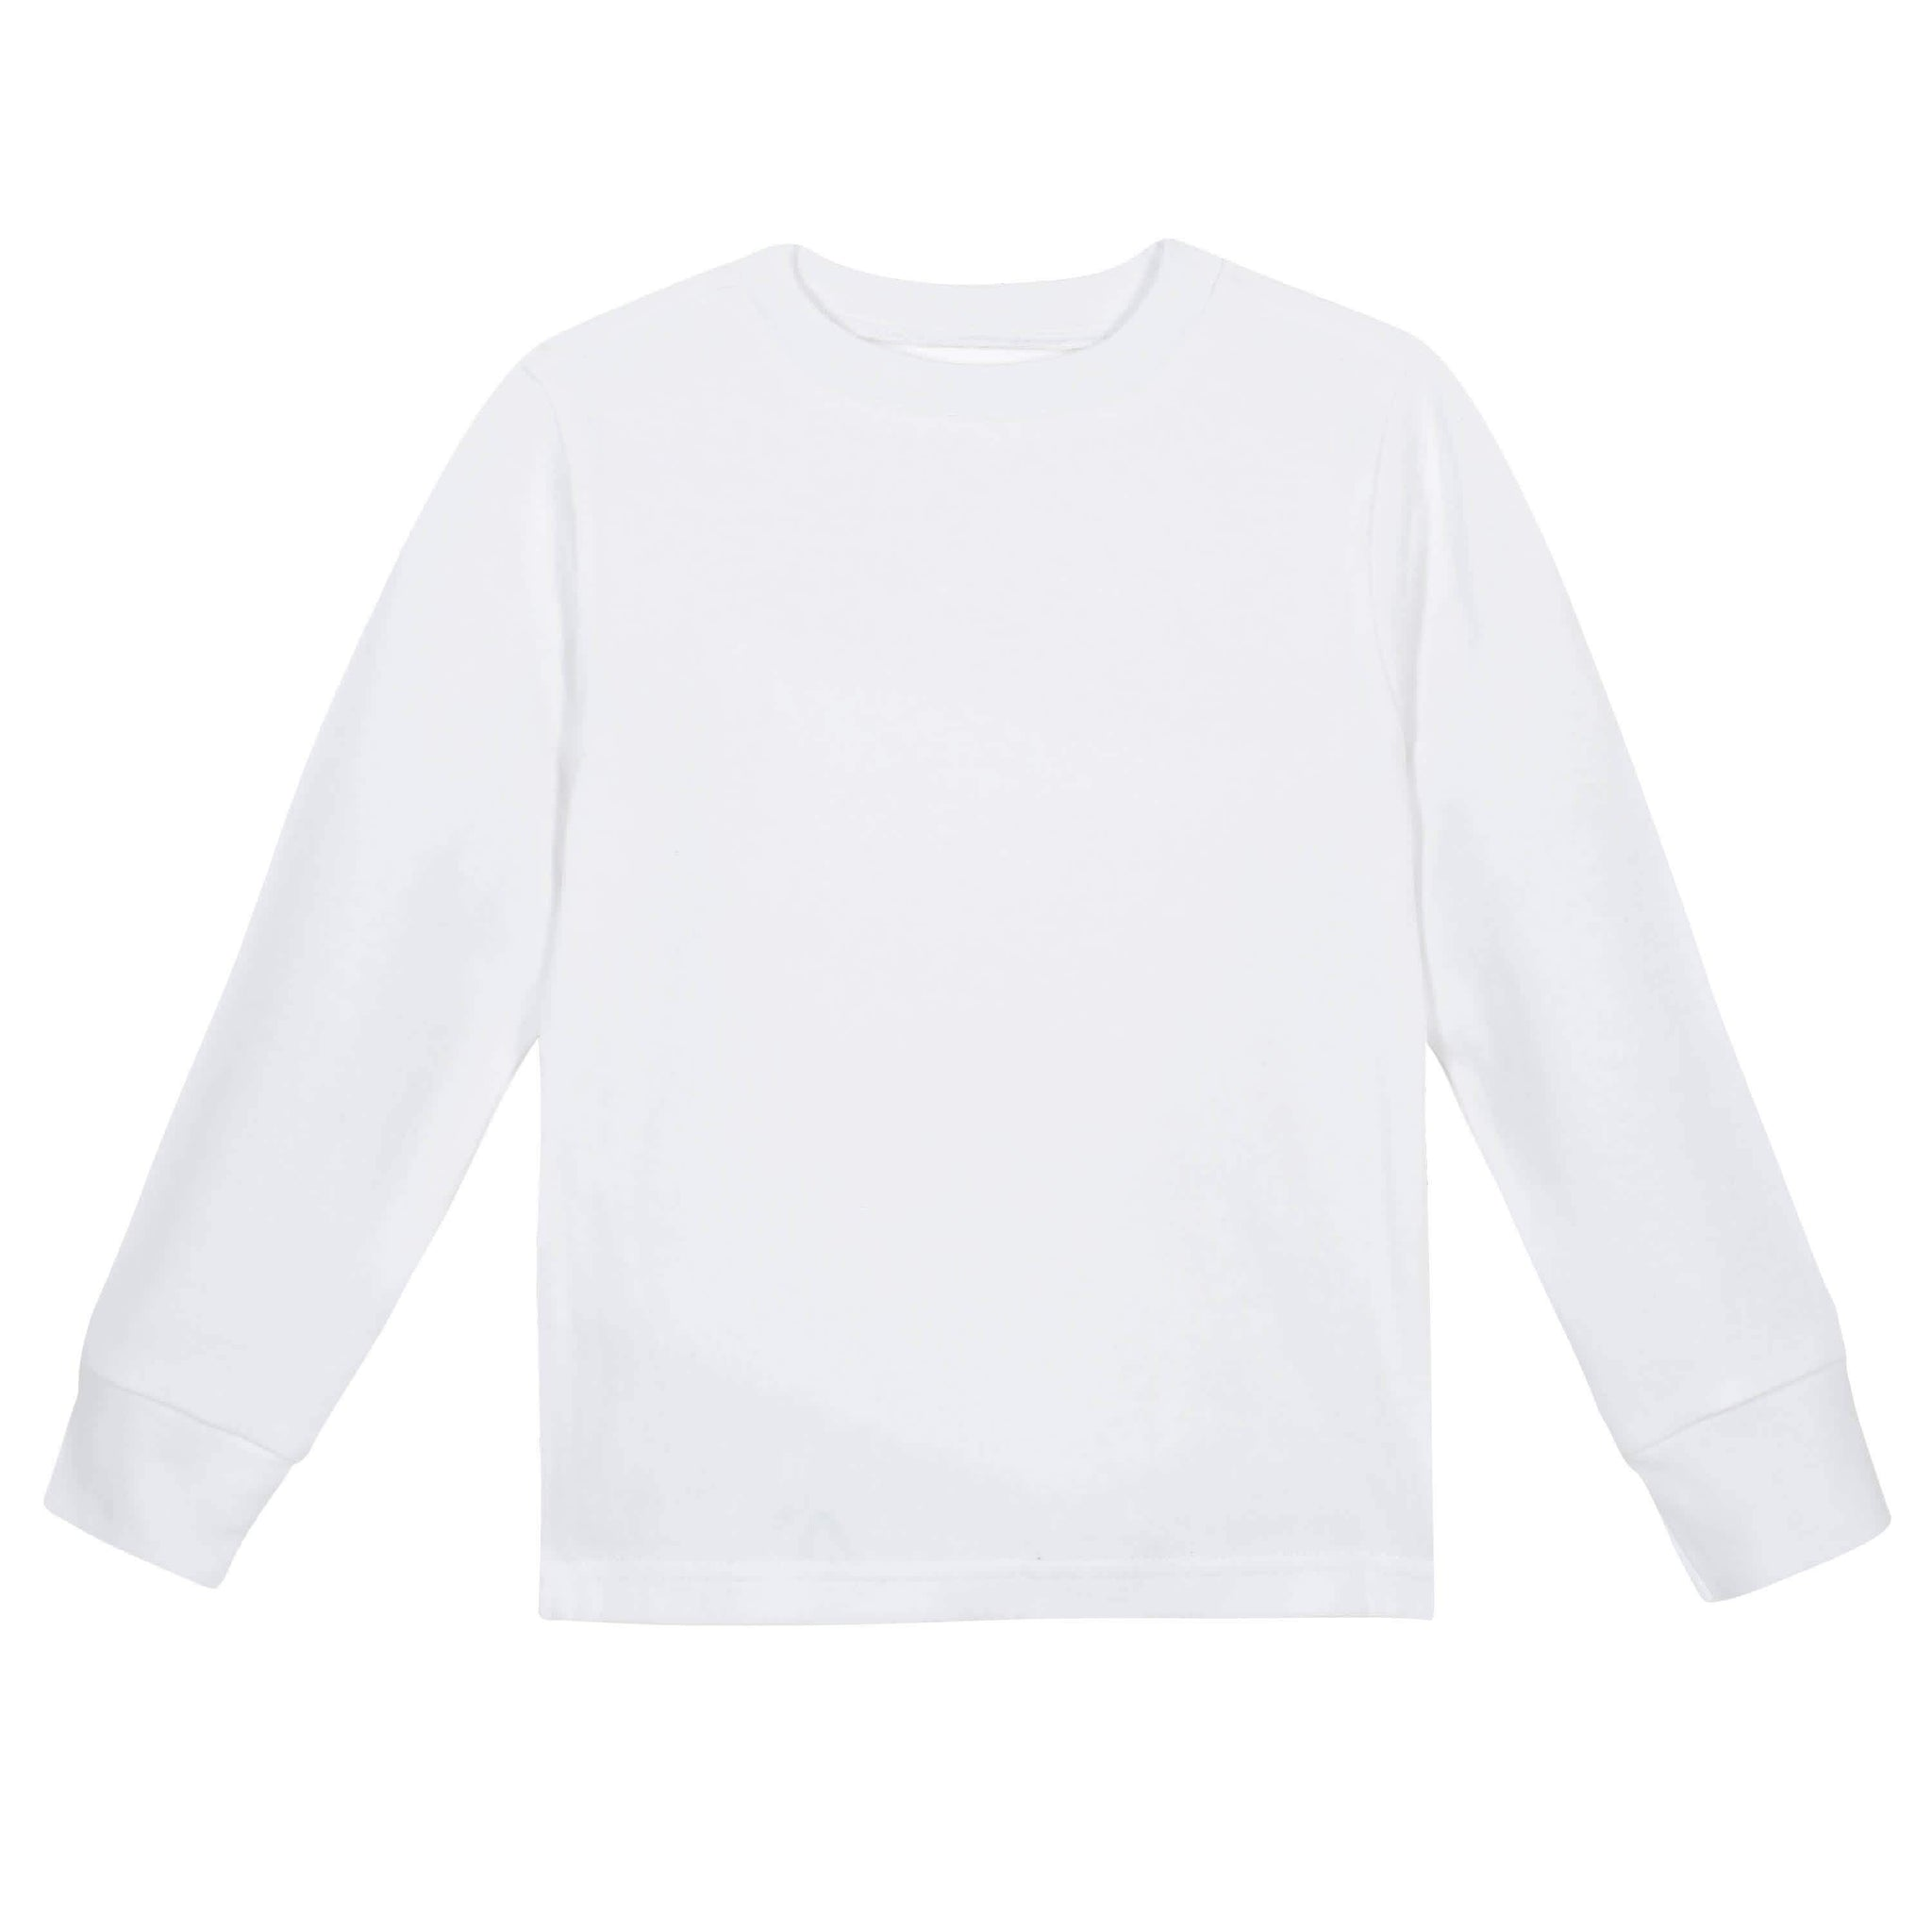 Gerber® Premium White Long Sleeve Tee Shirt - 10 Colors Available